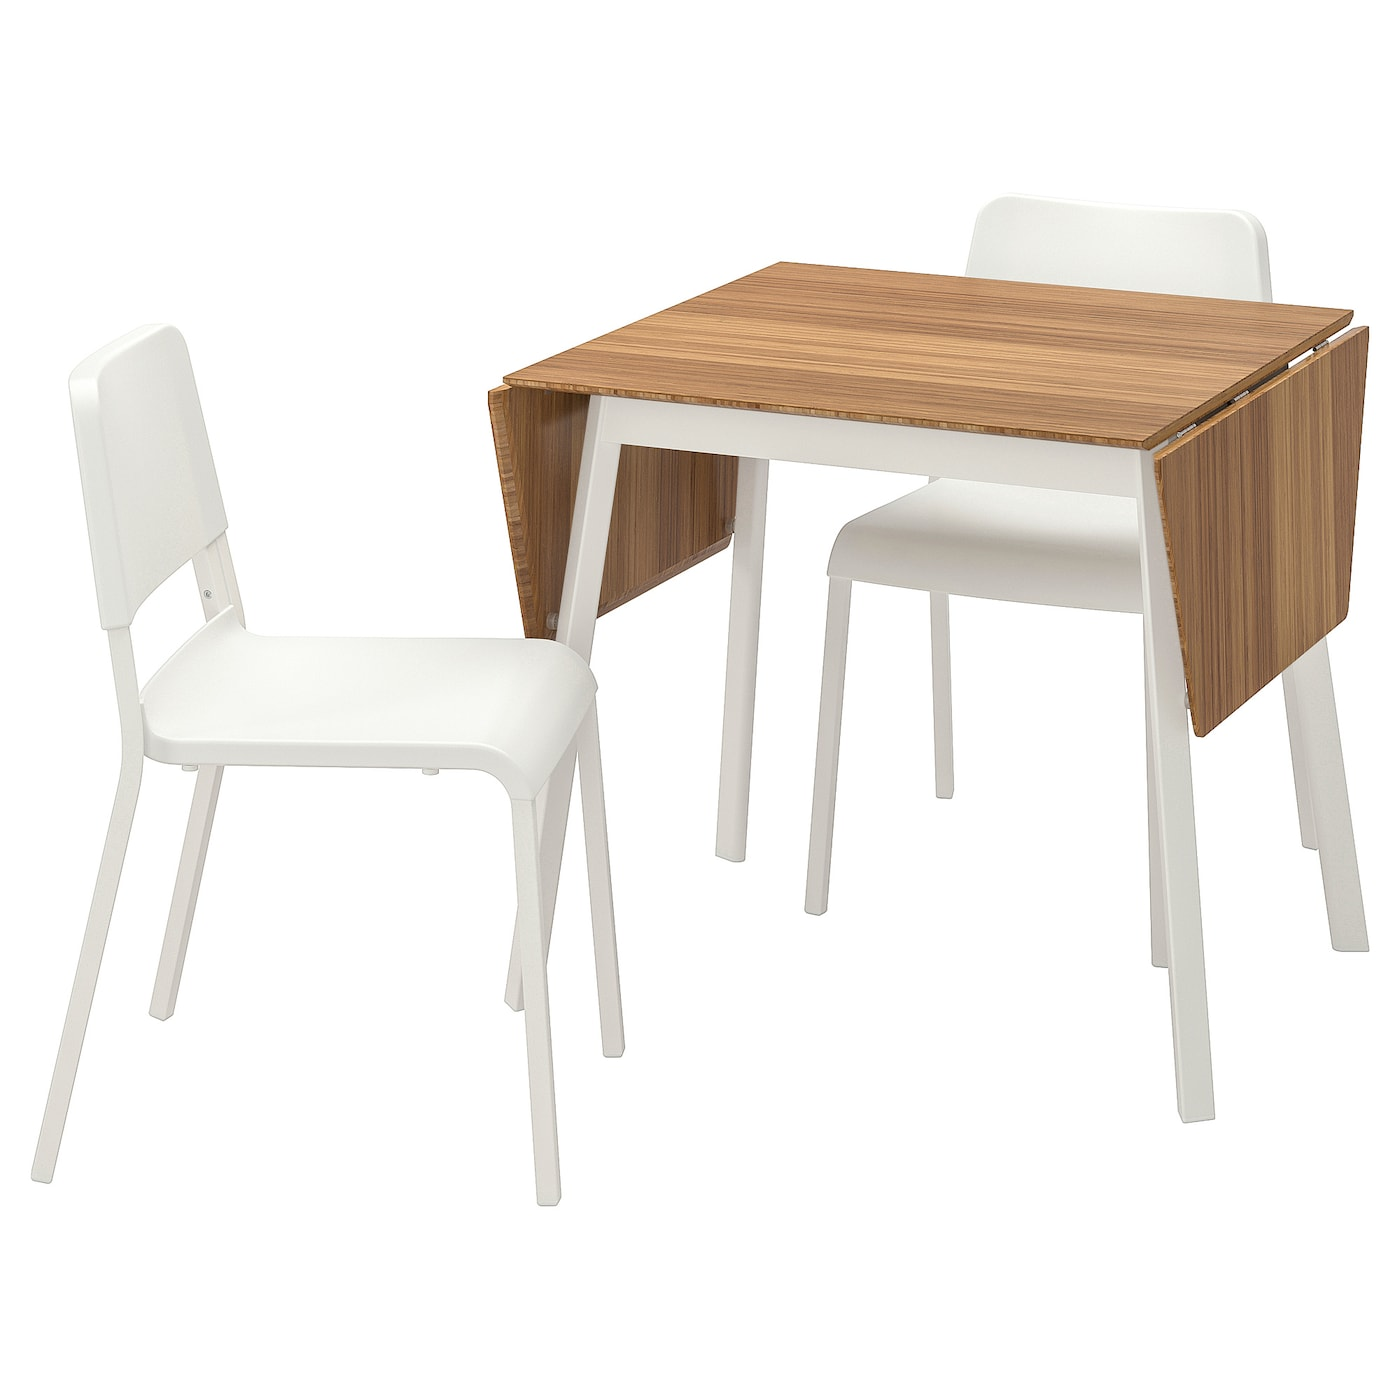 6 chair dining table set ikea